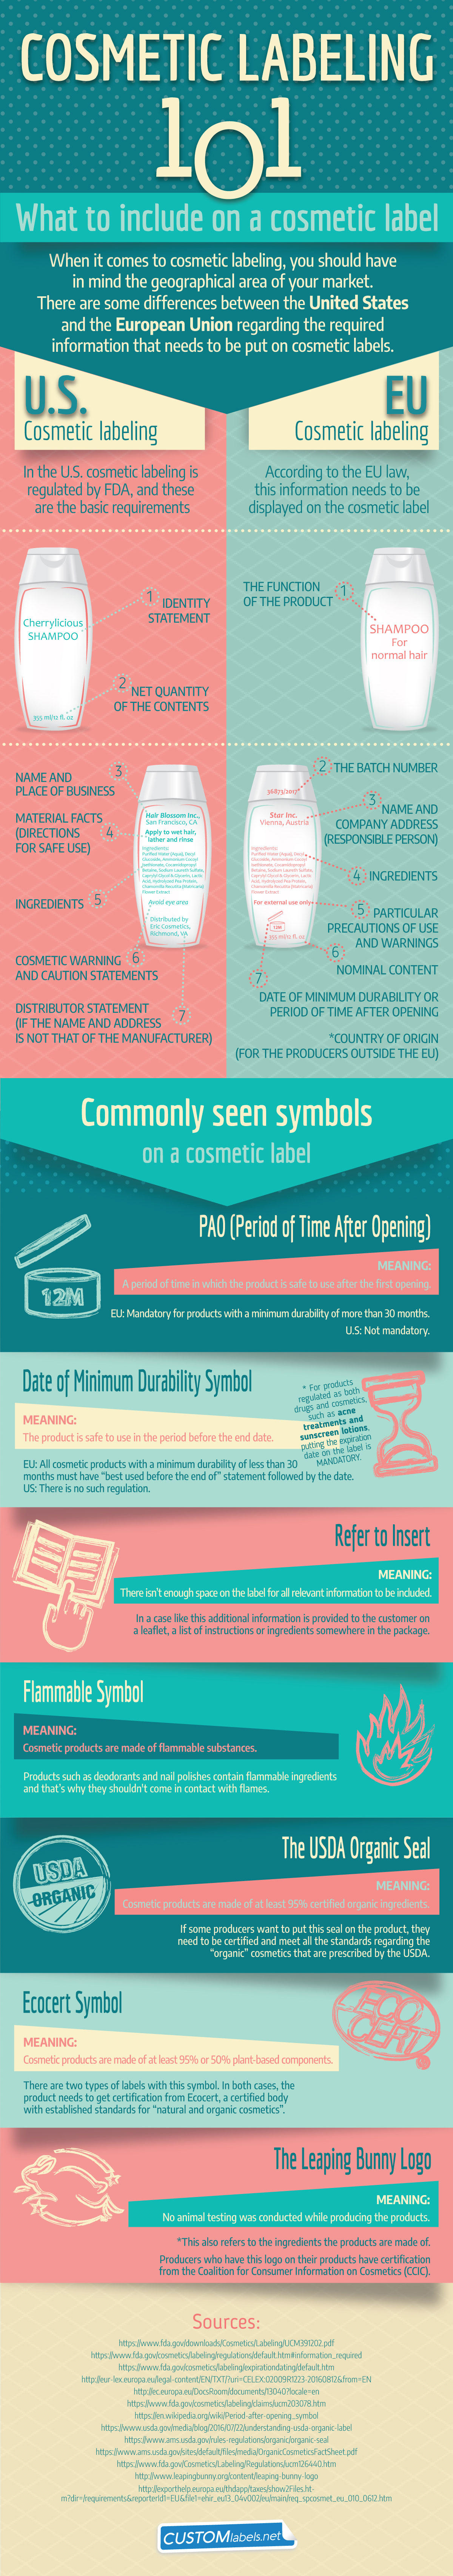 Cosmetic Labeling 101: What to Include When Launching Your Product